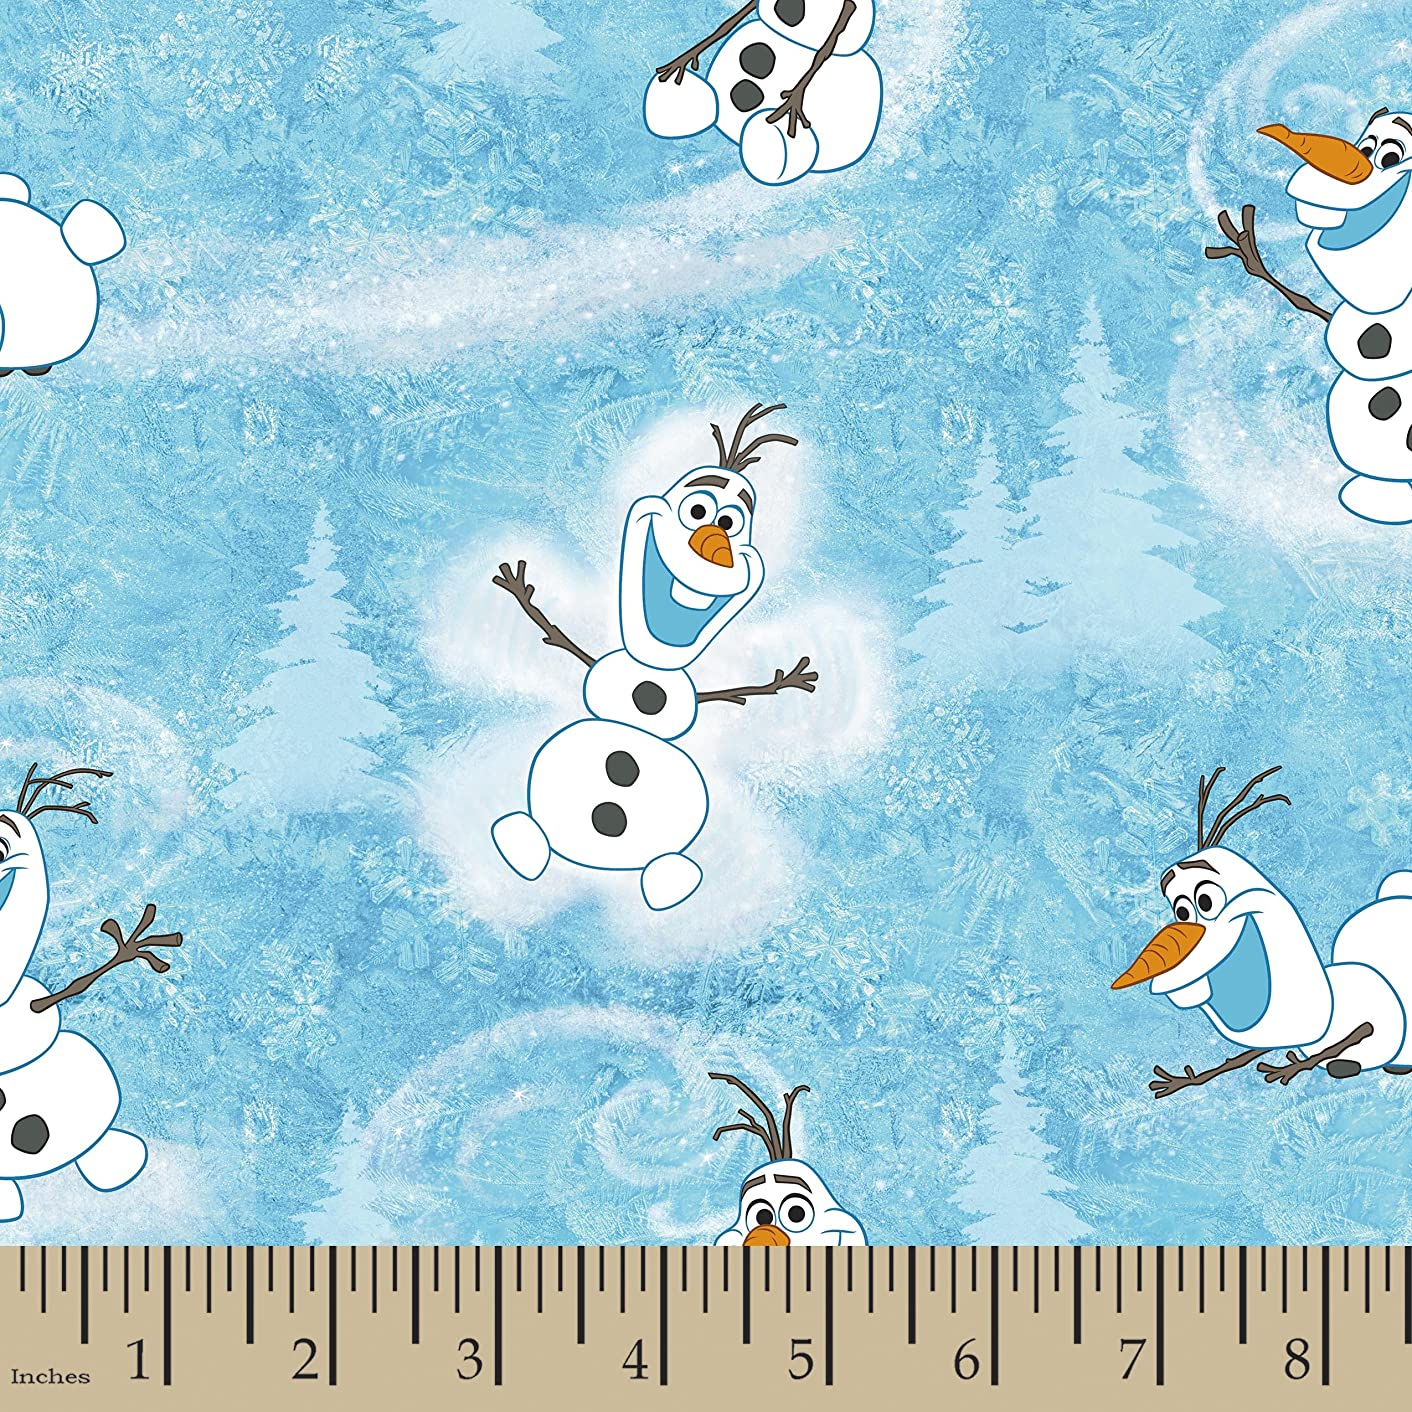 Springs Creative Products Group Disney Frozen Olaf Winter Toss Yard Fabric Light Blue